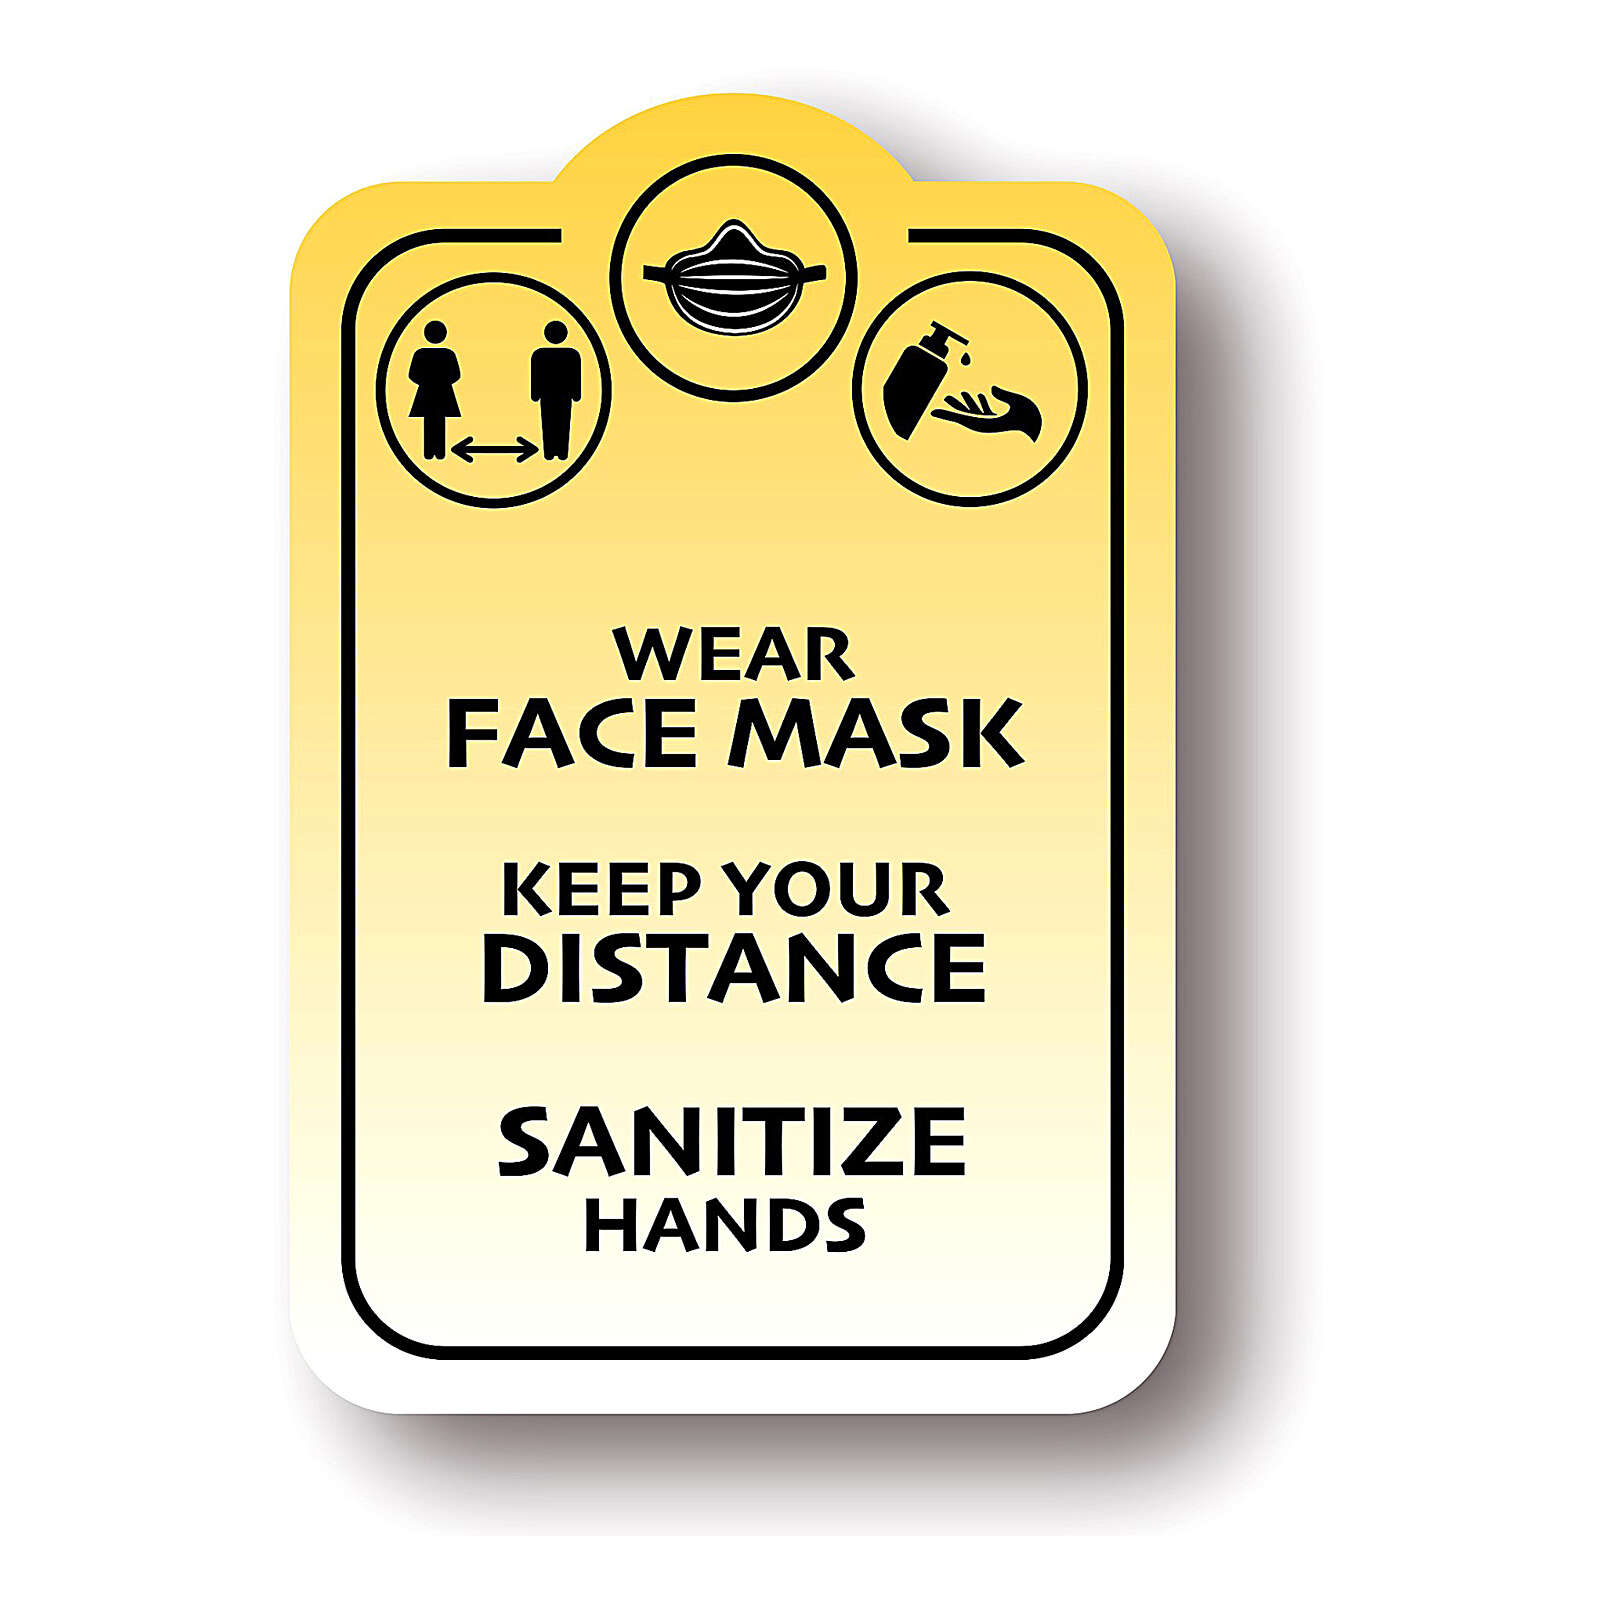 Removable stickers 4 PIECES - WEAR FACE MASK KEEP YOUR DISTANCE 3